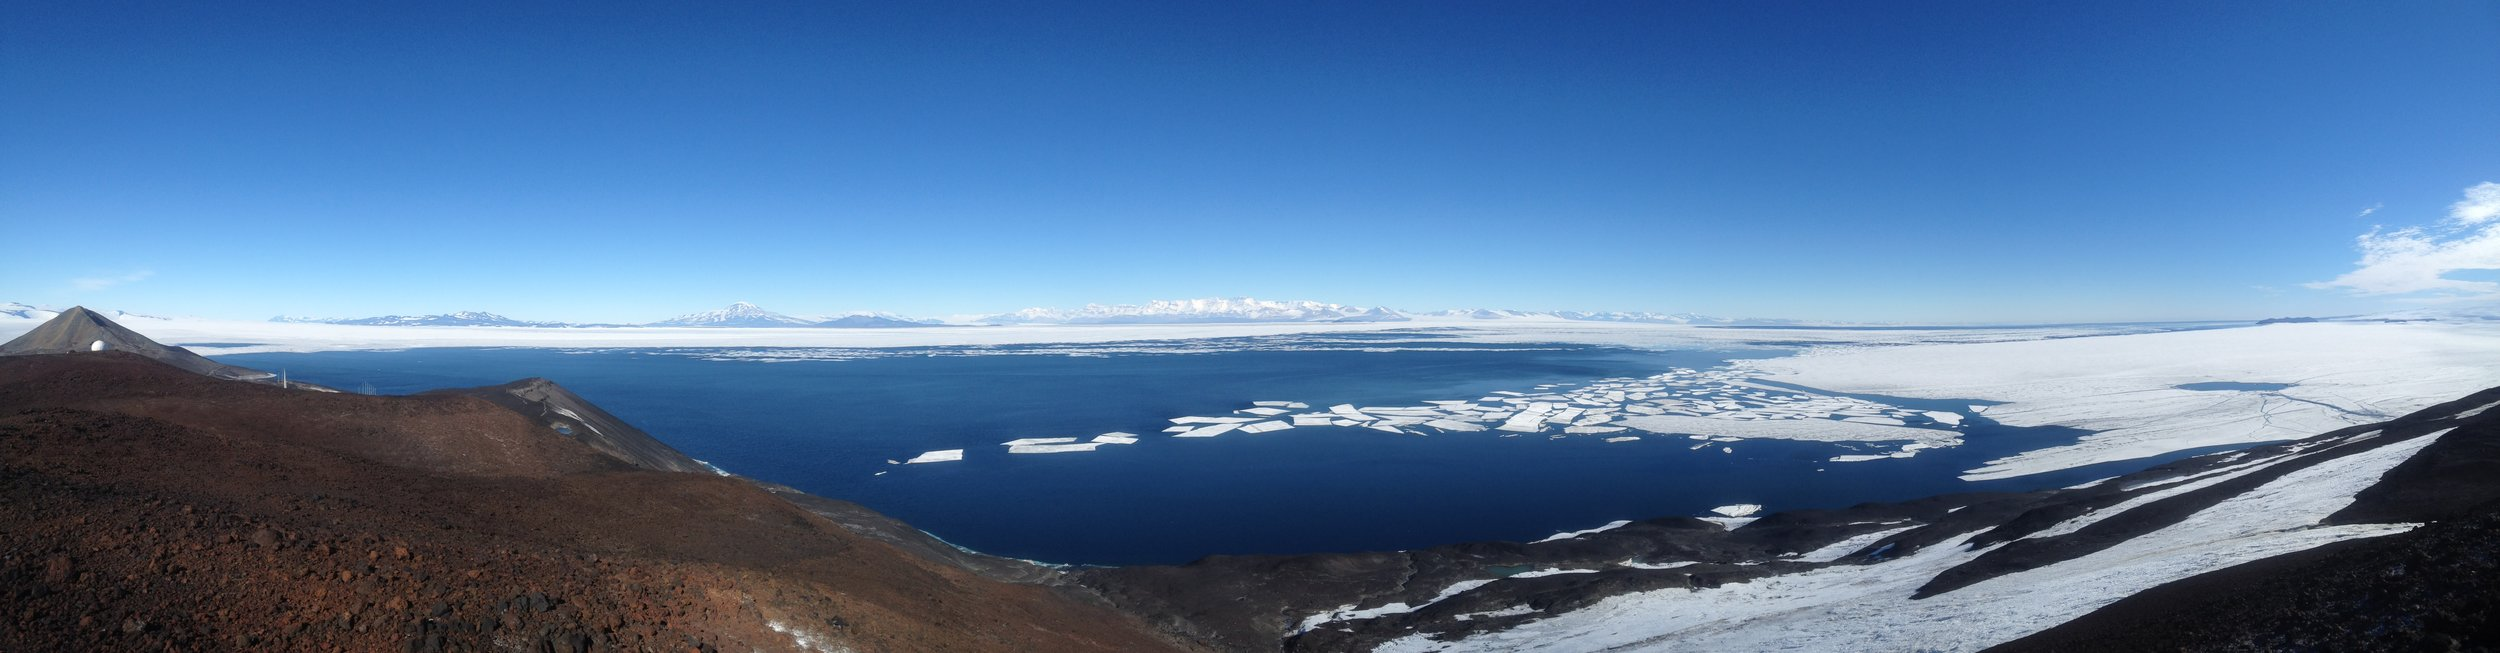 The view from the hills above Scott Base, Antarctica.